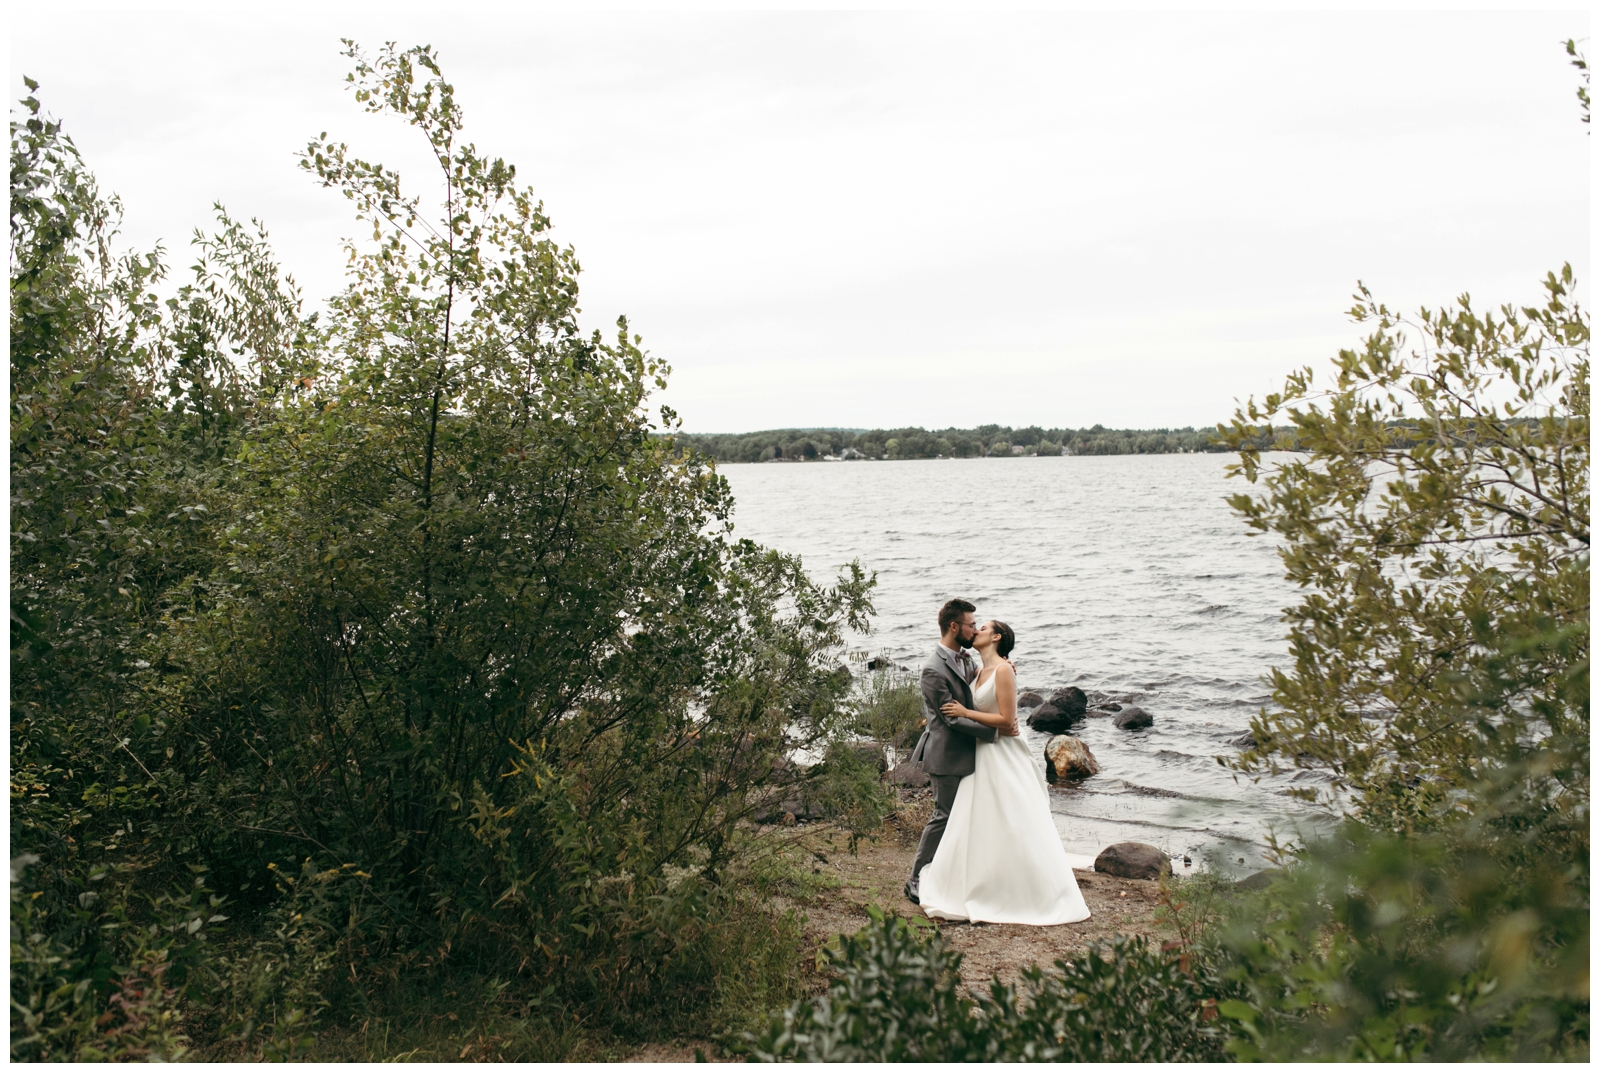 Massachusetts-Lake-Wedding-Bailey-Q-Photo-Boston-Wedding-Photographer-017.jpg